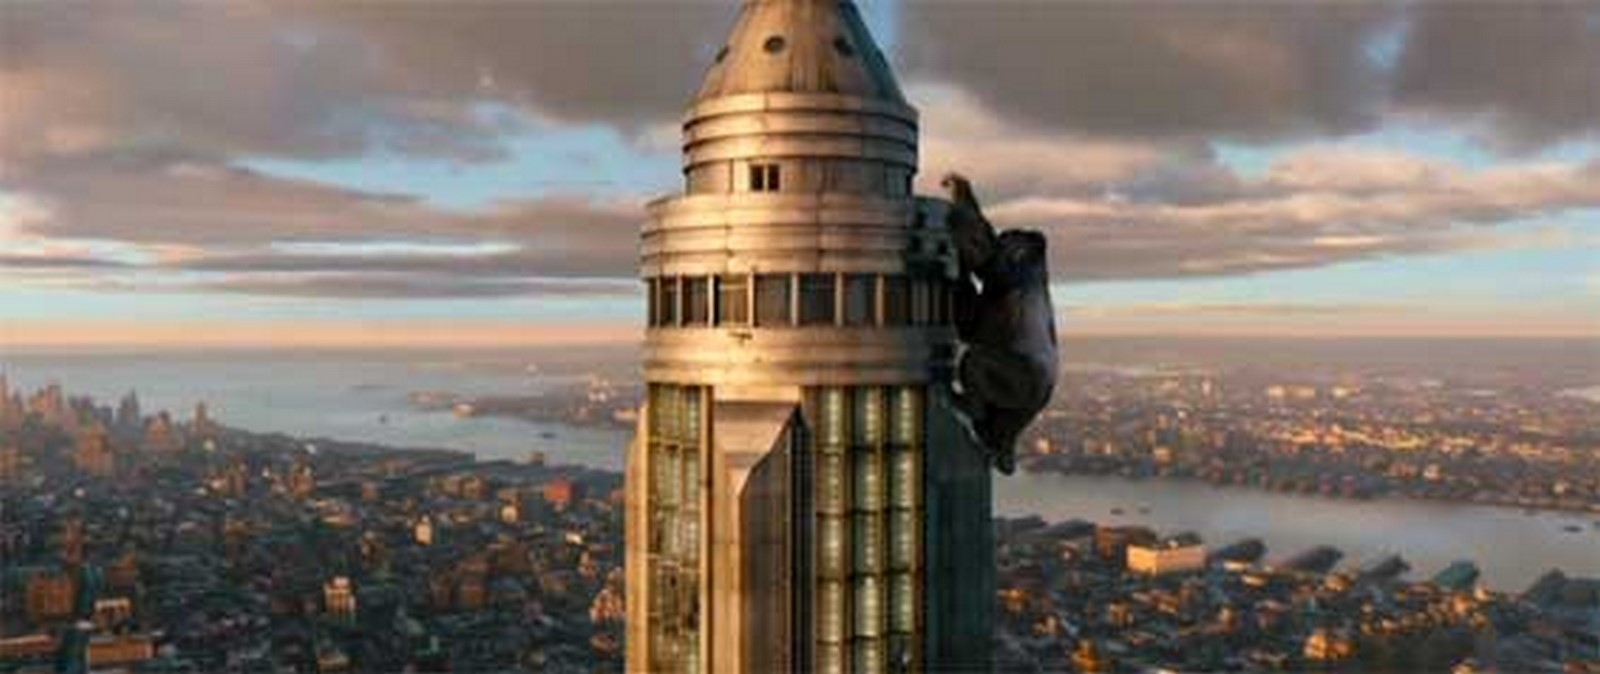 How are famous high-rise buildings used in movies - Sheet2